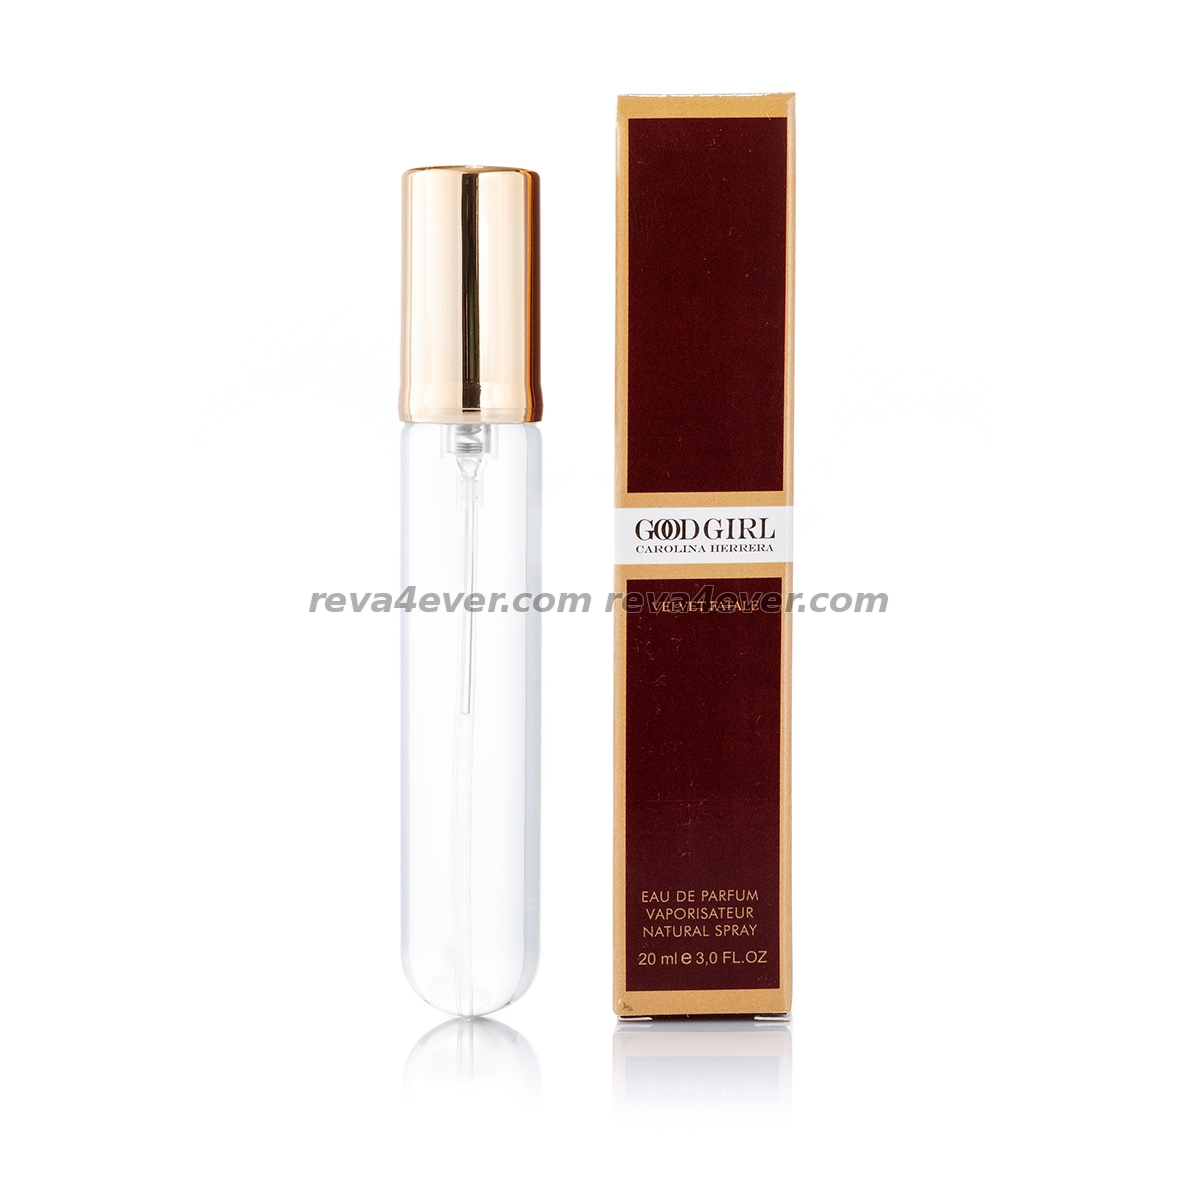 Carolina Herrera Good Girl Velvet Fatale edp 20 мл в коробке